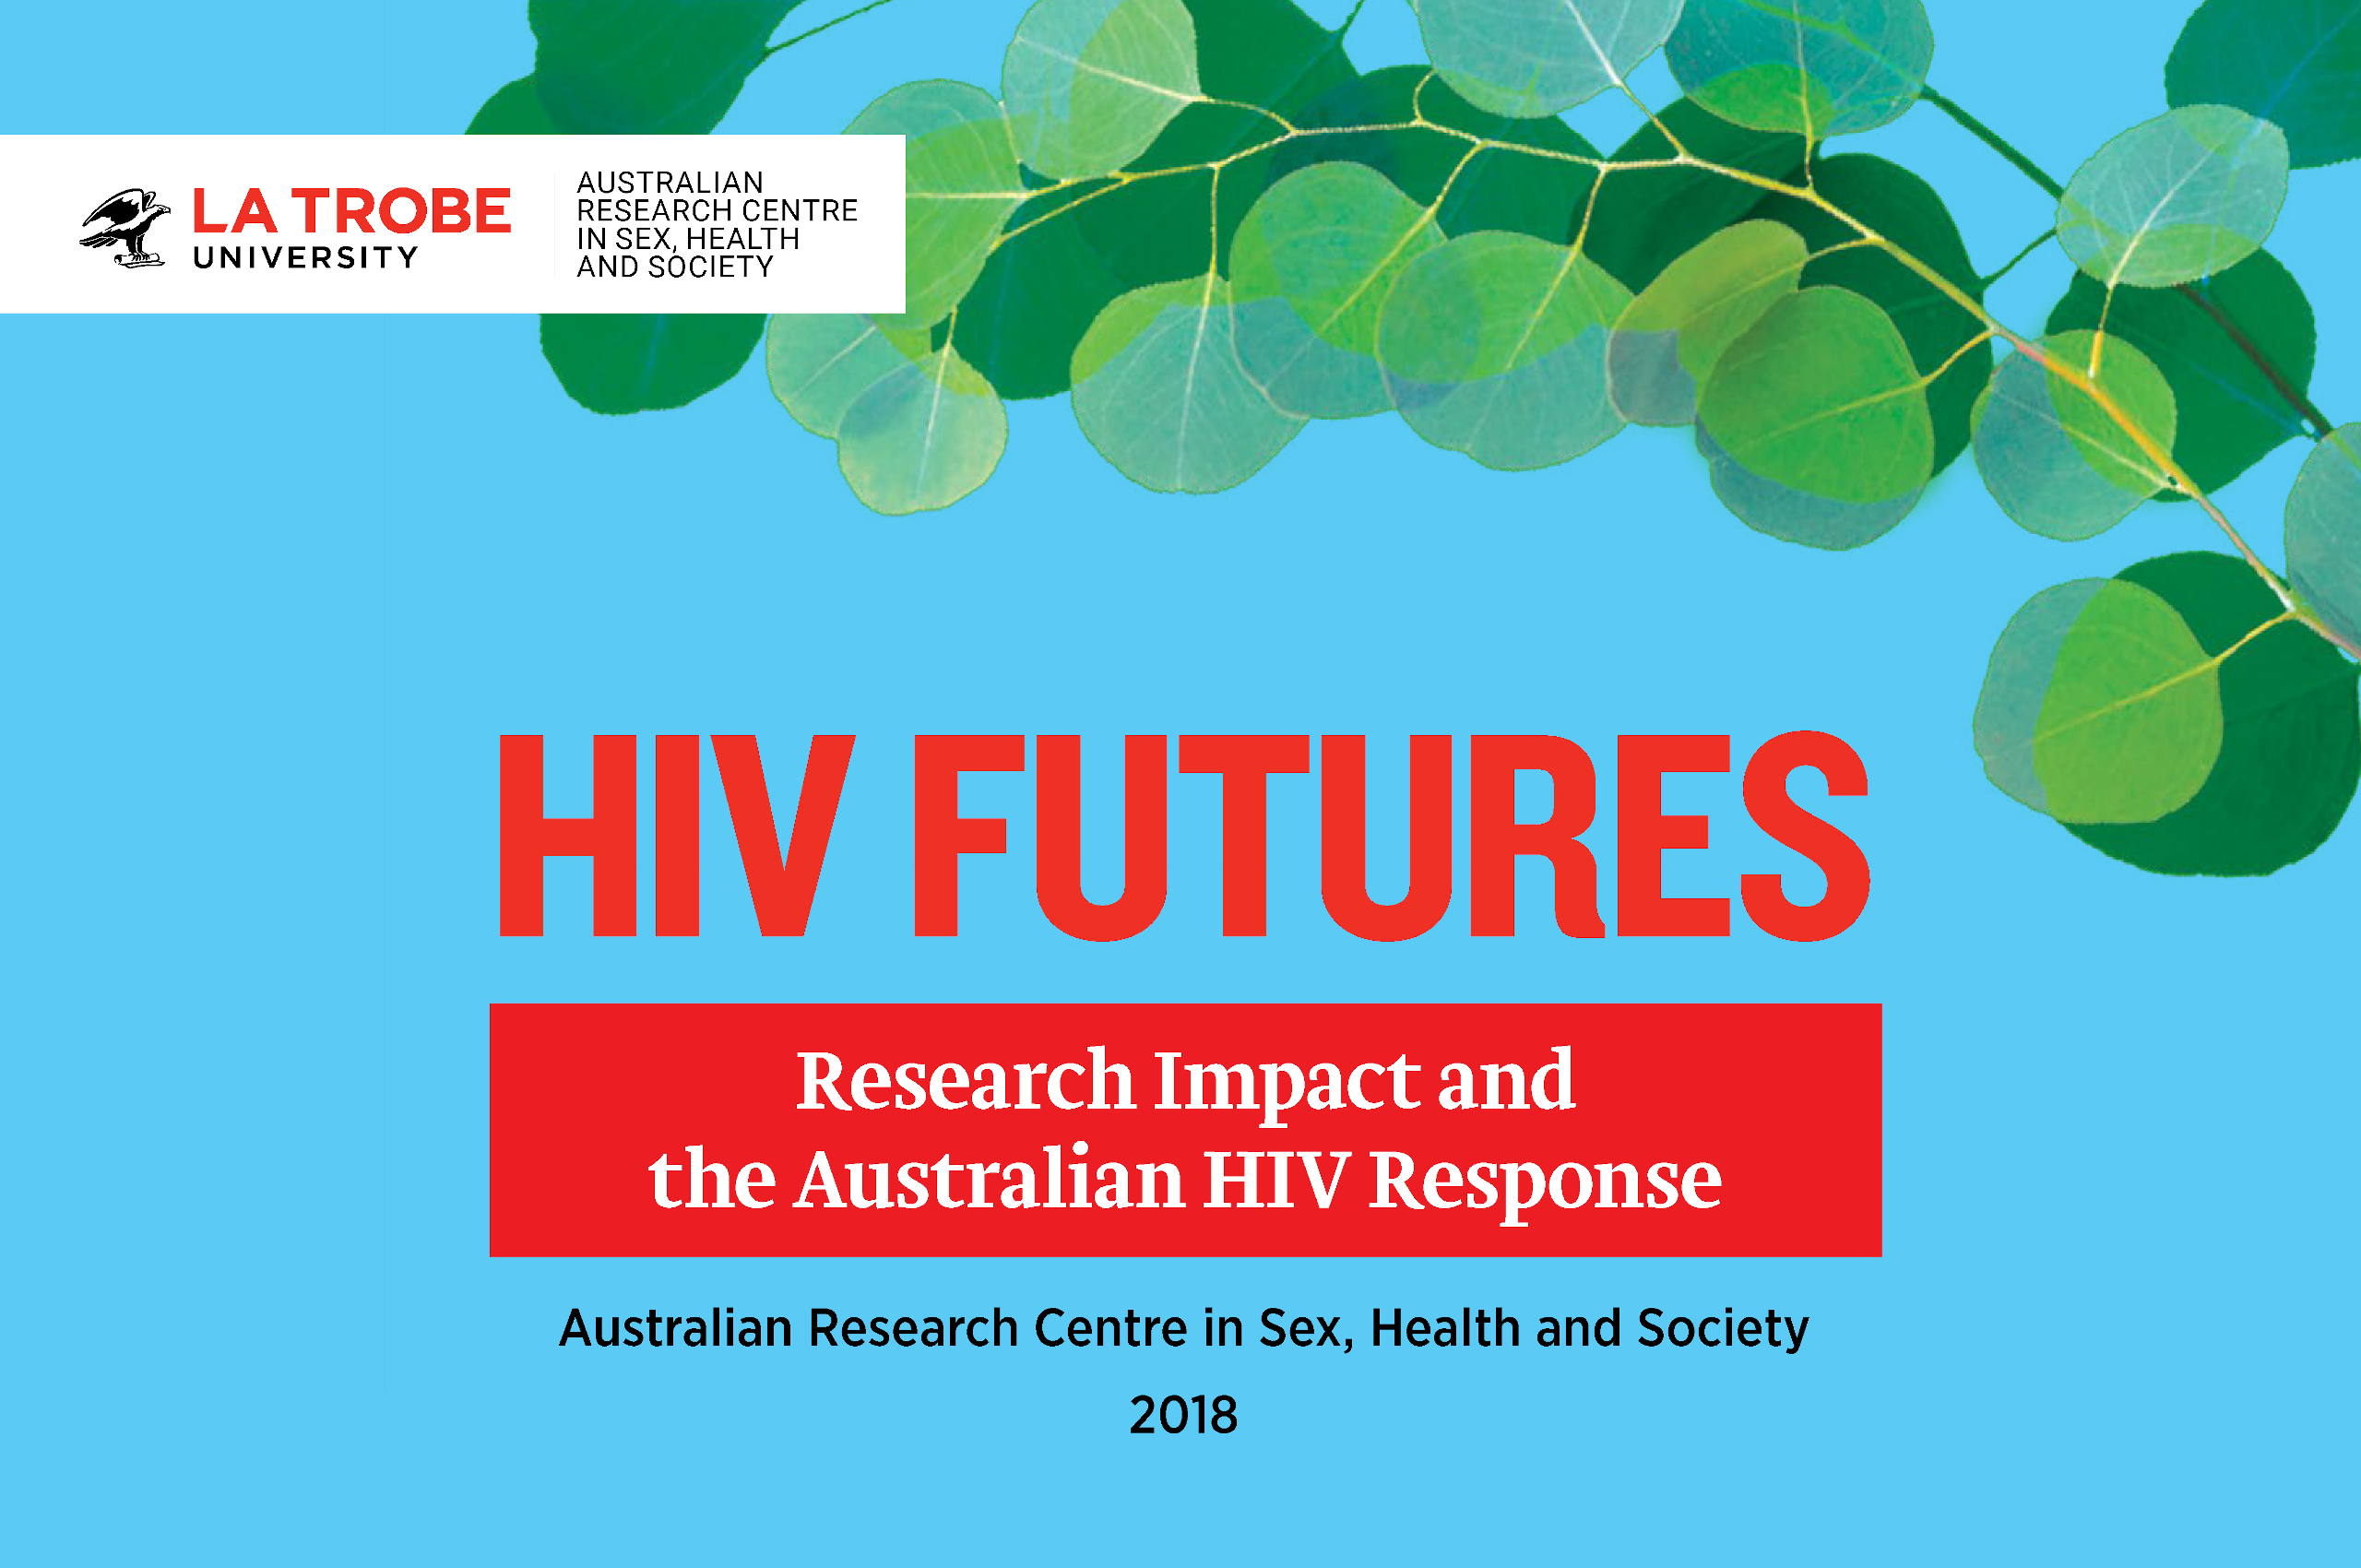 HIV Futures Community Impact Report front cover with leaves and La Trobe logo